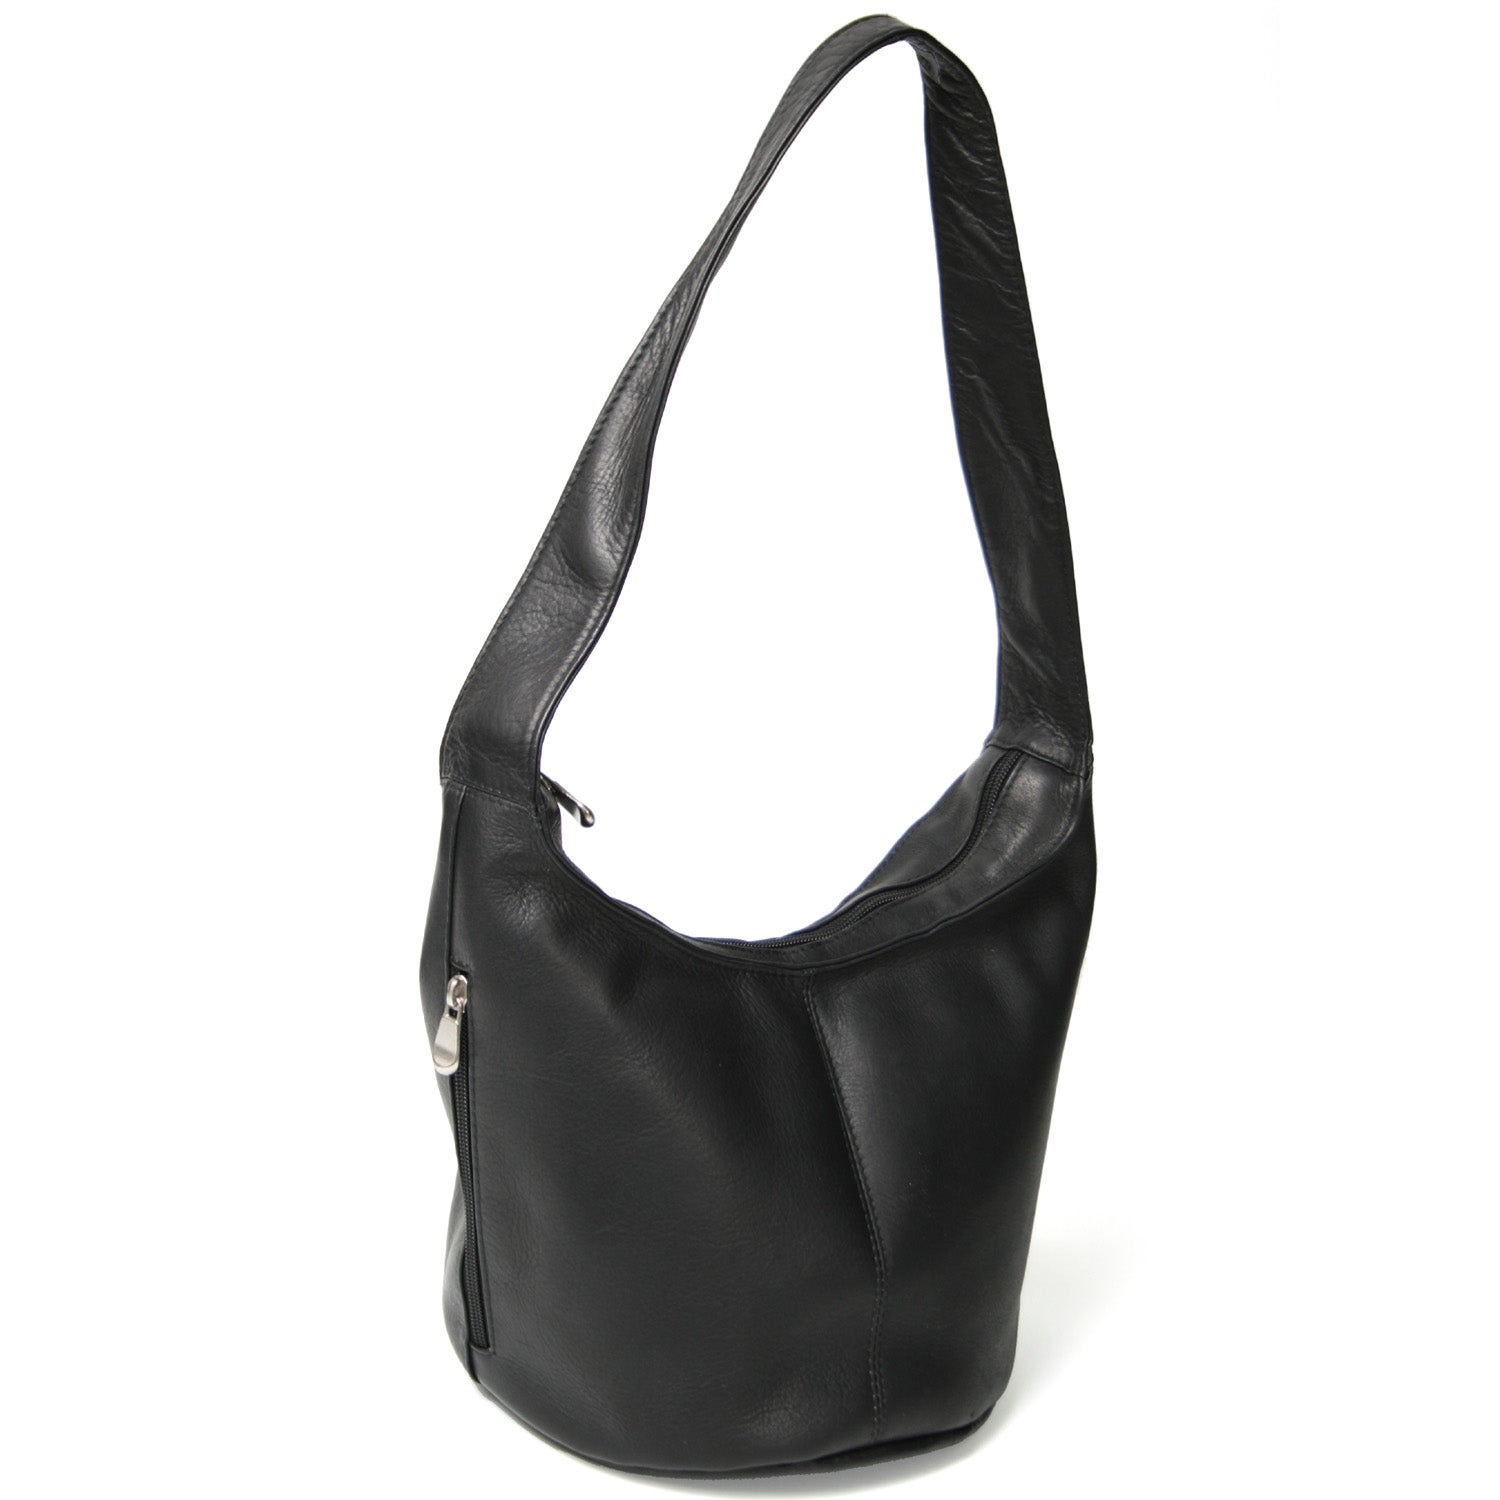 Royce Leather Women s Vaquetta Hobo Bag with Side Zip Pocket